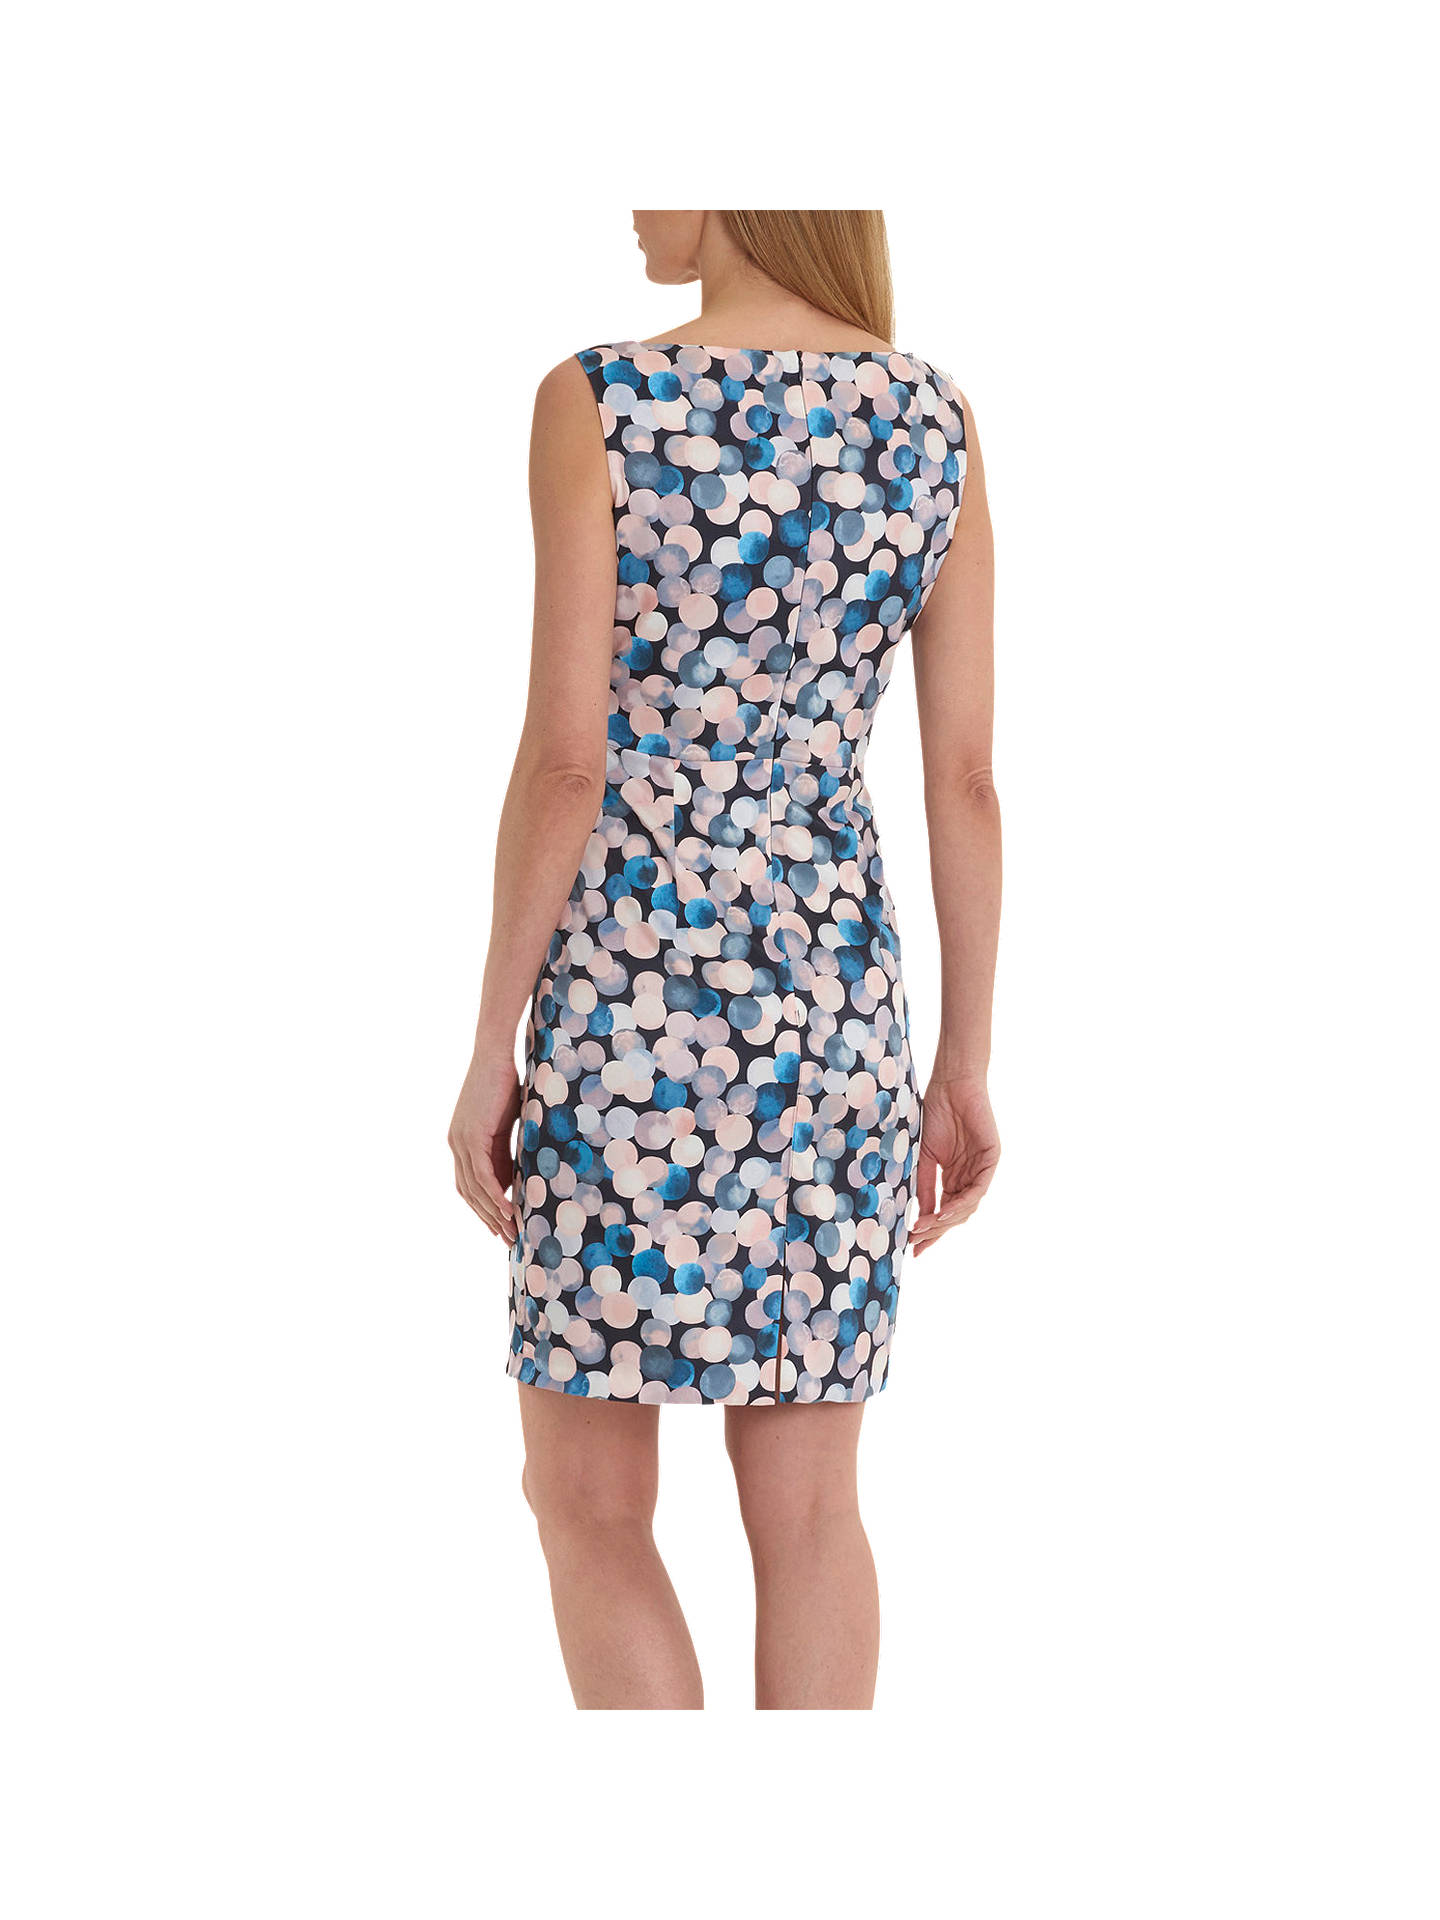 BuyBetty Barclay Globe Print Dress, Blue/Rosé, 10 Online at johnlewis.com